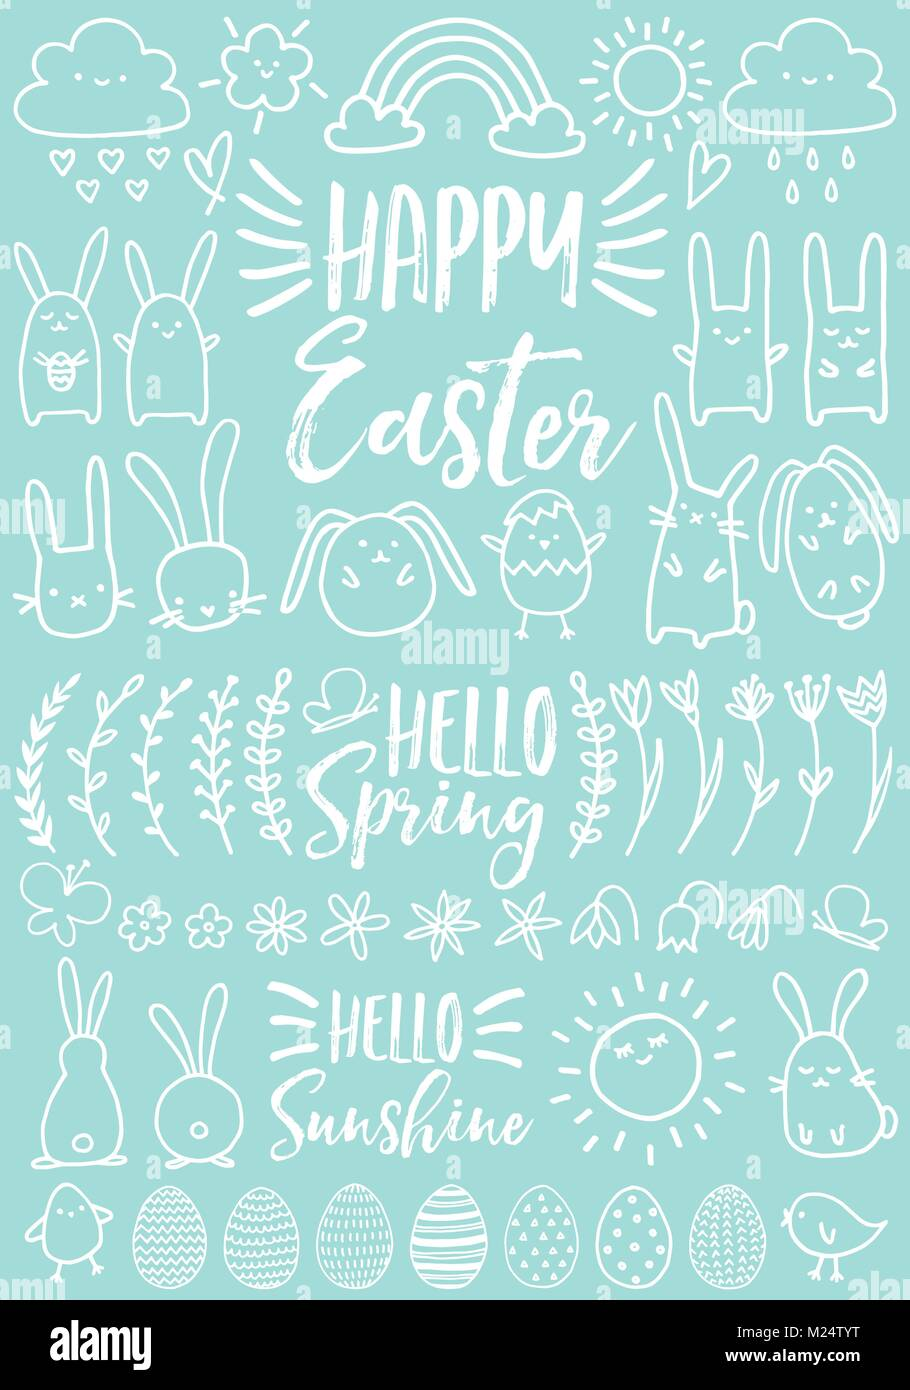 Cute white Easter doodles, bunnies, eggs and hand drawn flowers, set of vector design elements - Stock Image